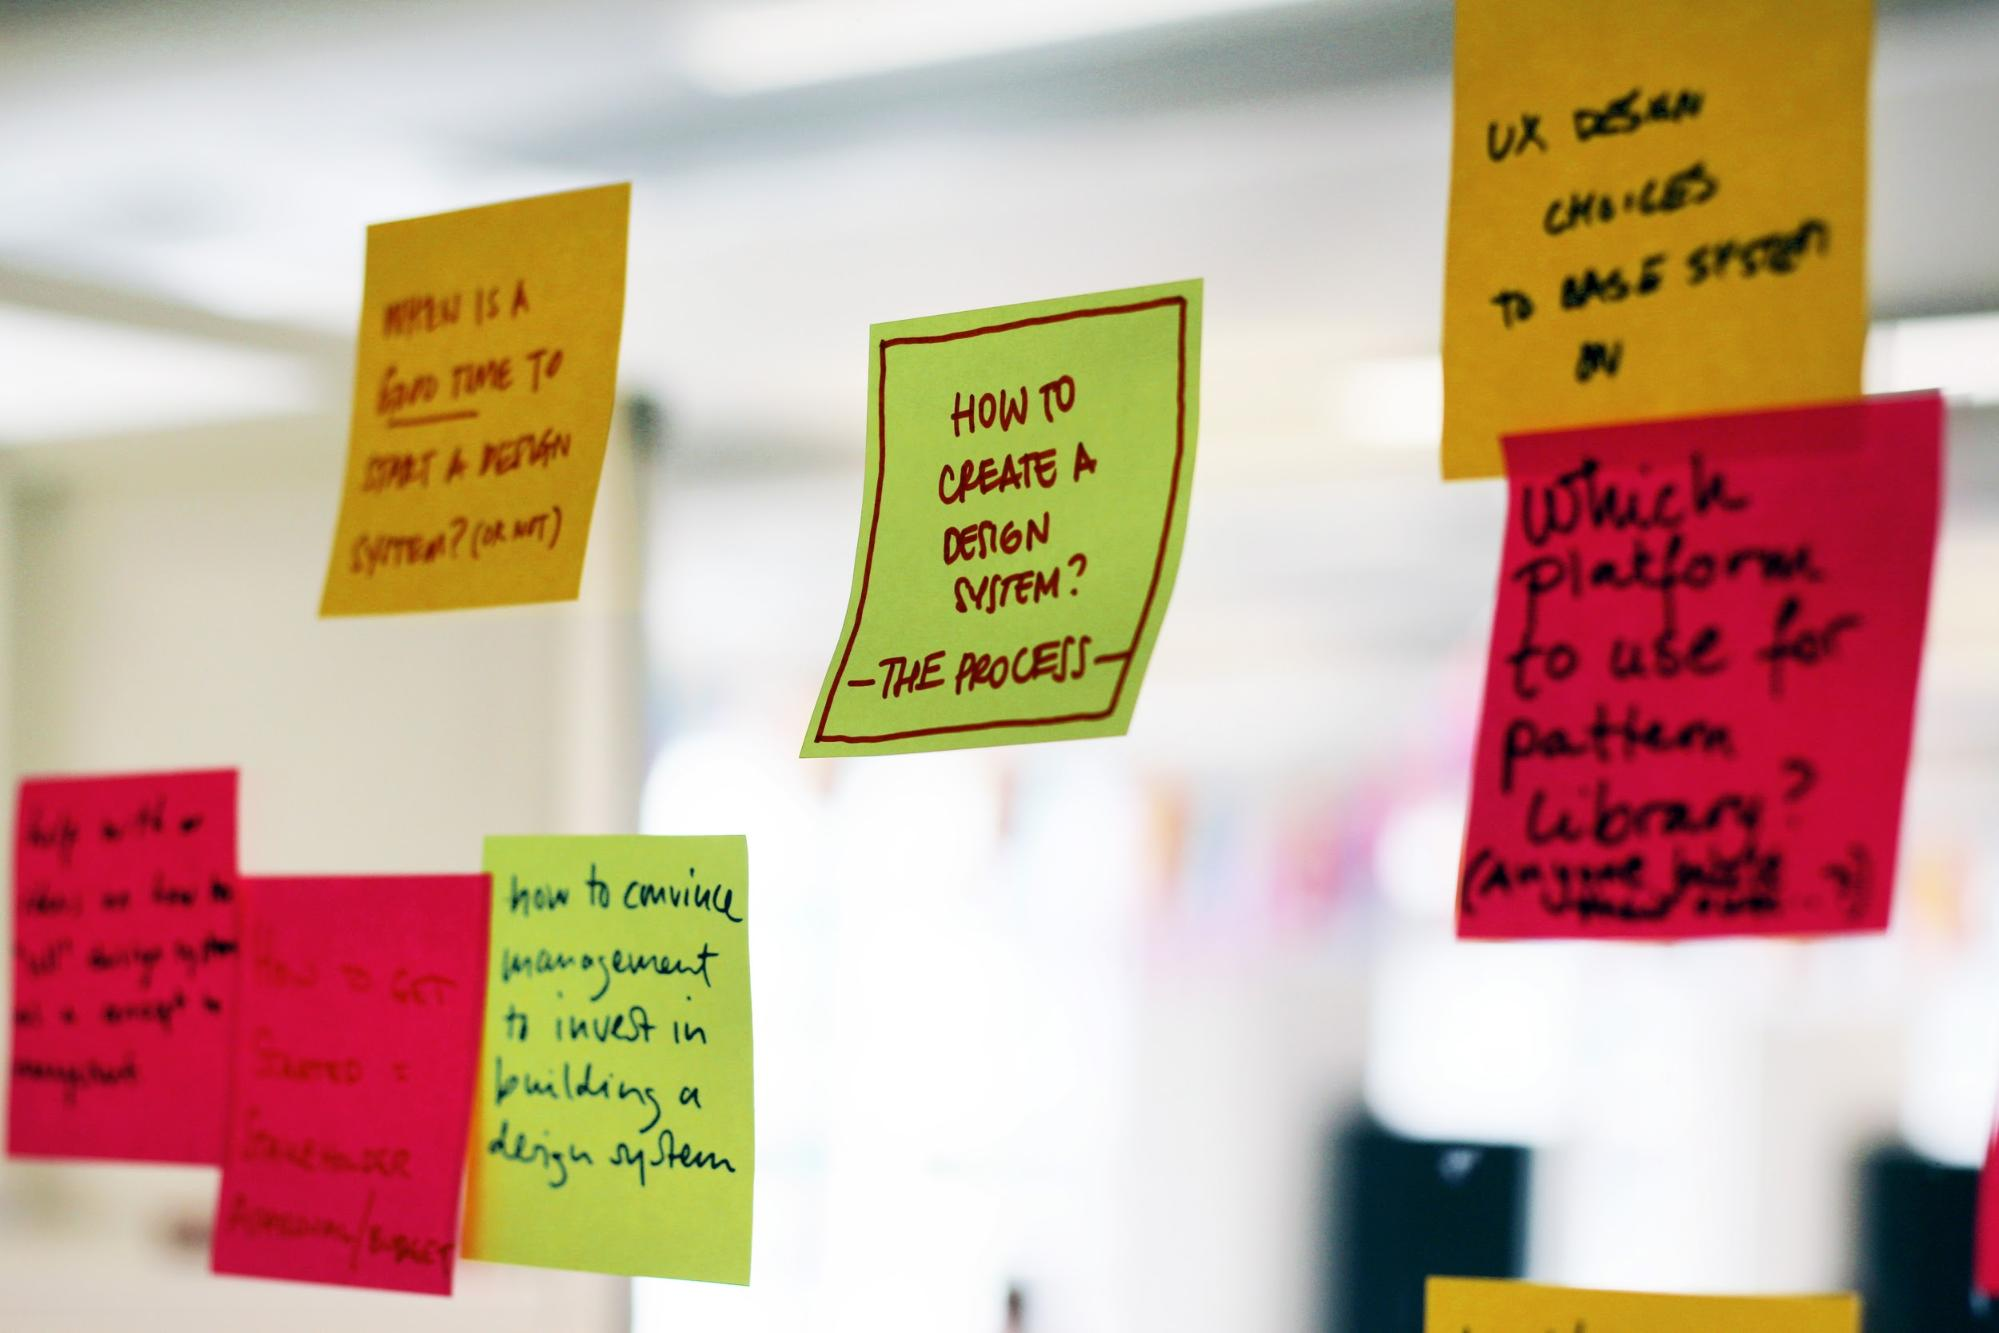 A series of Post-it notes - one of which reads: 'How to create a design system?' - process